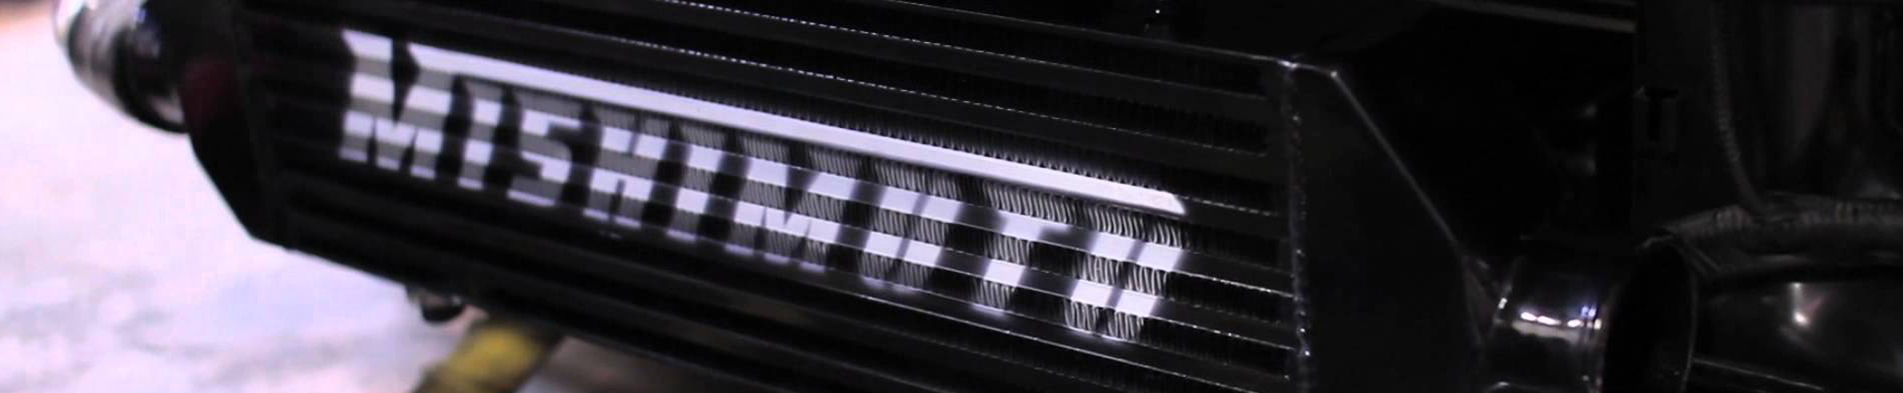 intercooler-banner.jpg